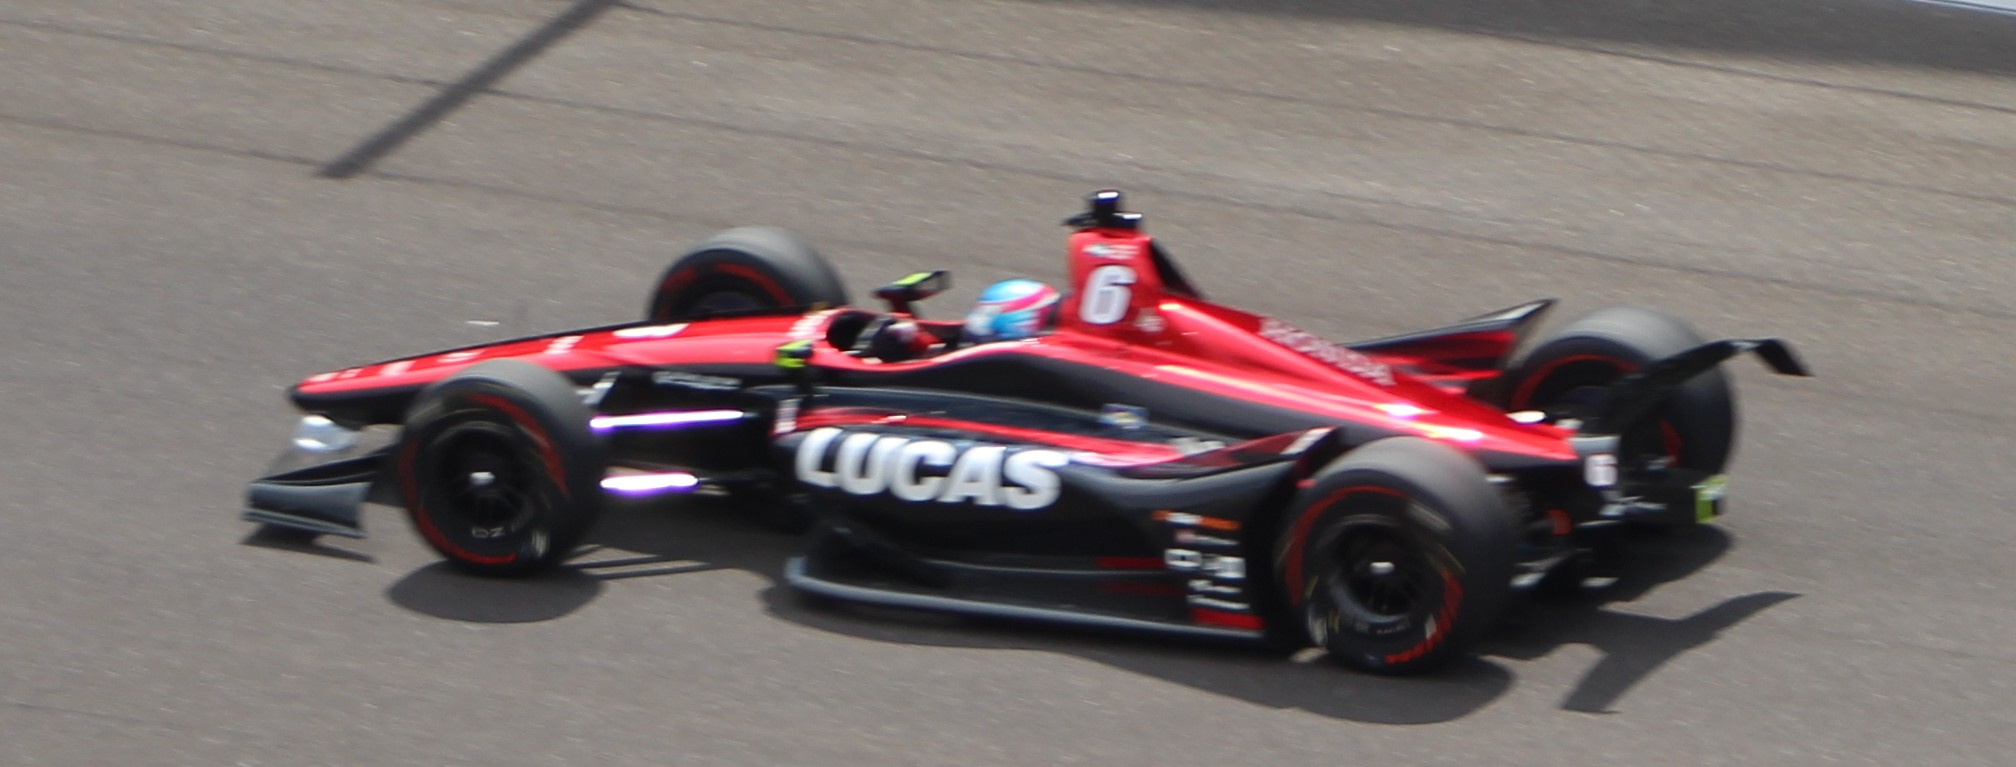 Indy 500 2018 190